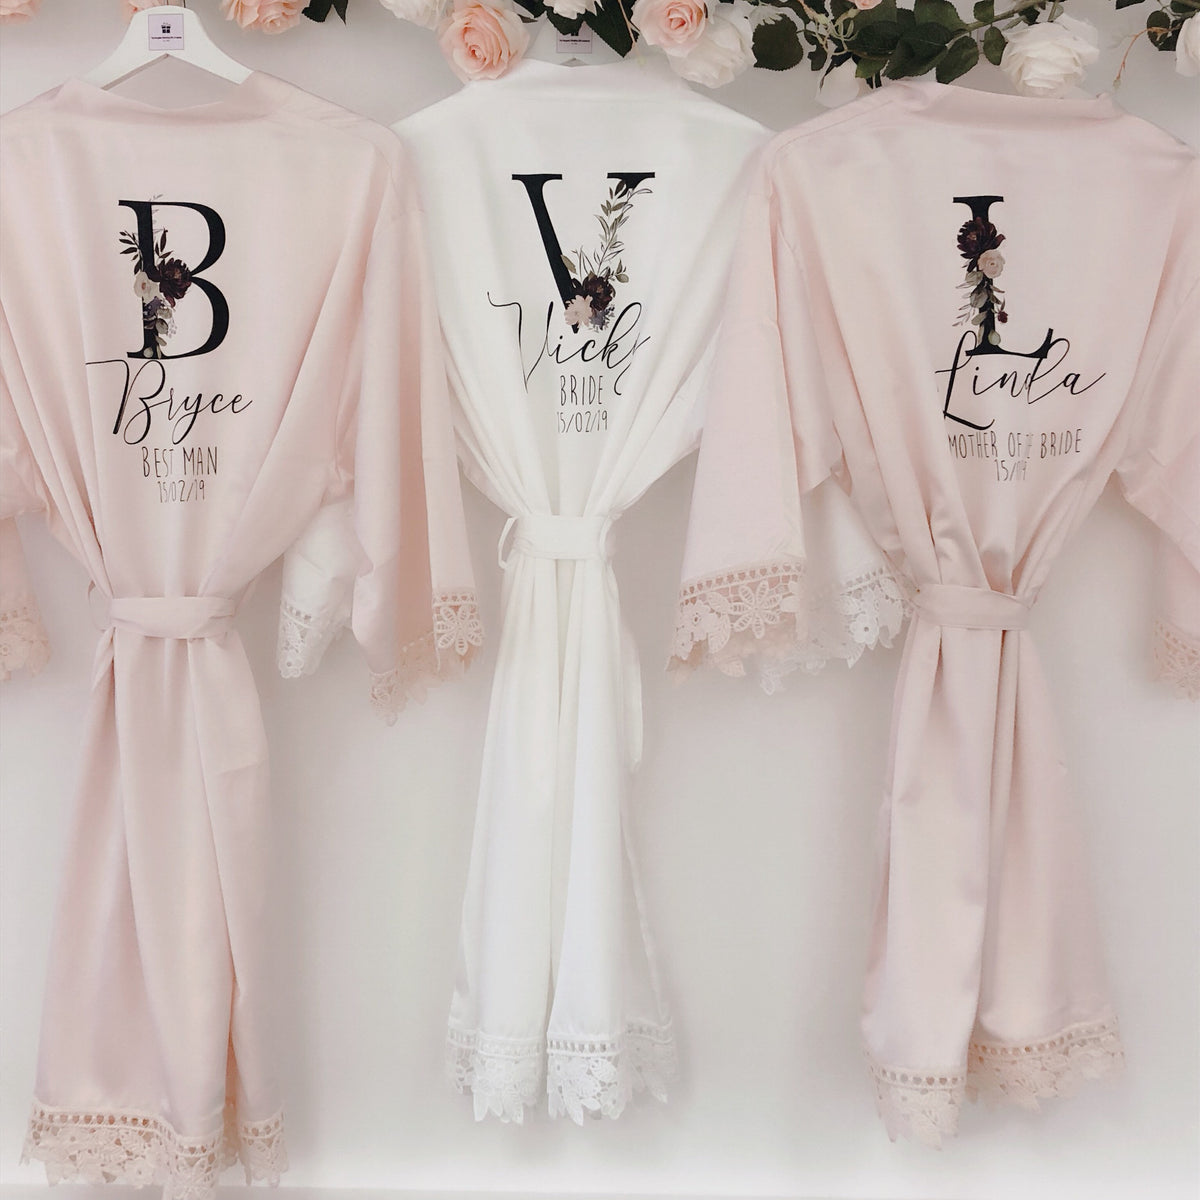 AMÉLIE PEARL robes with initials